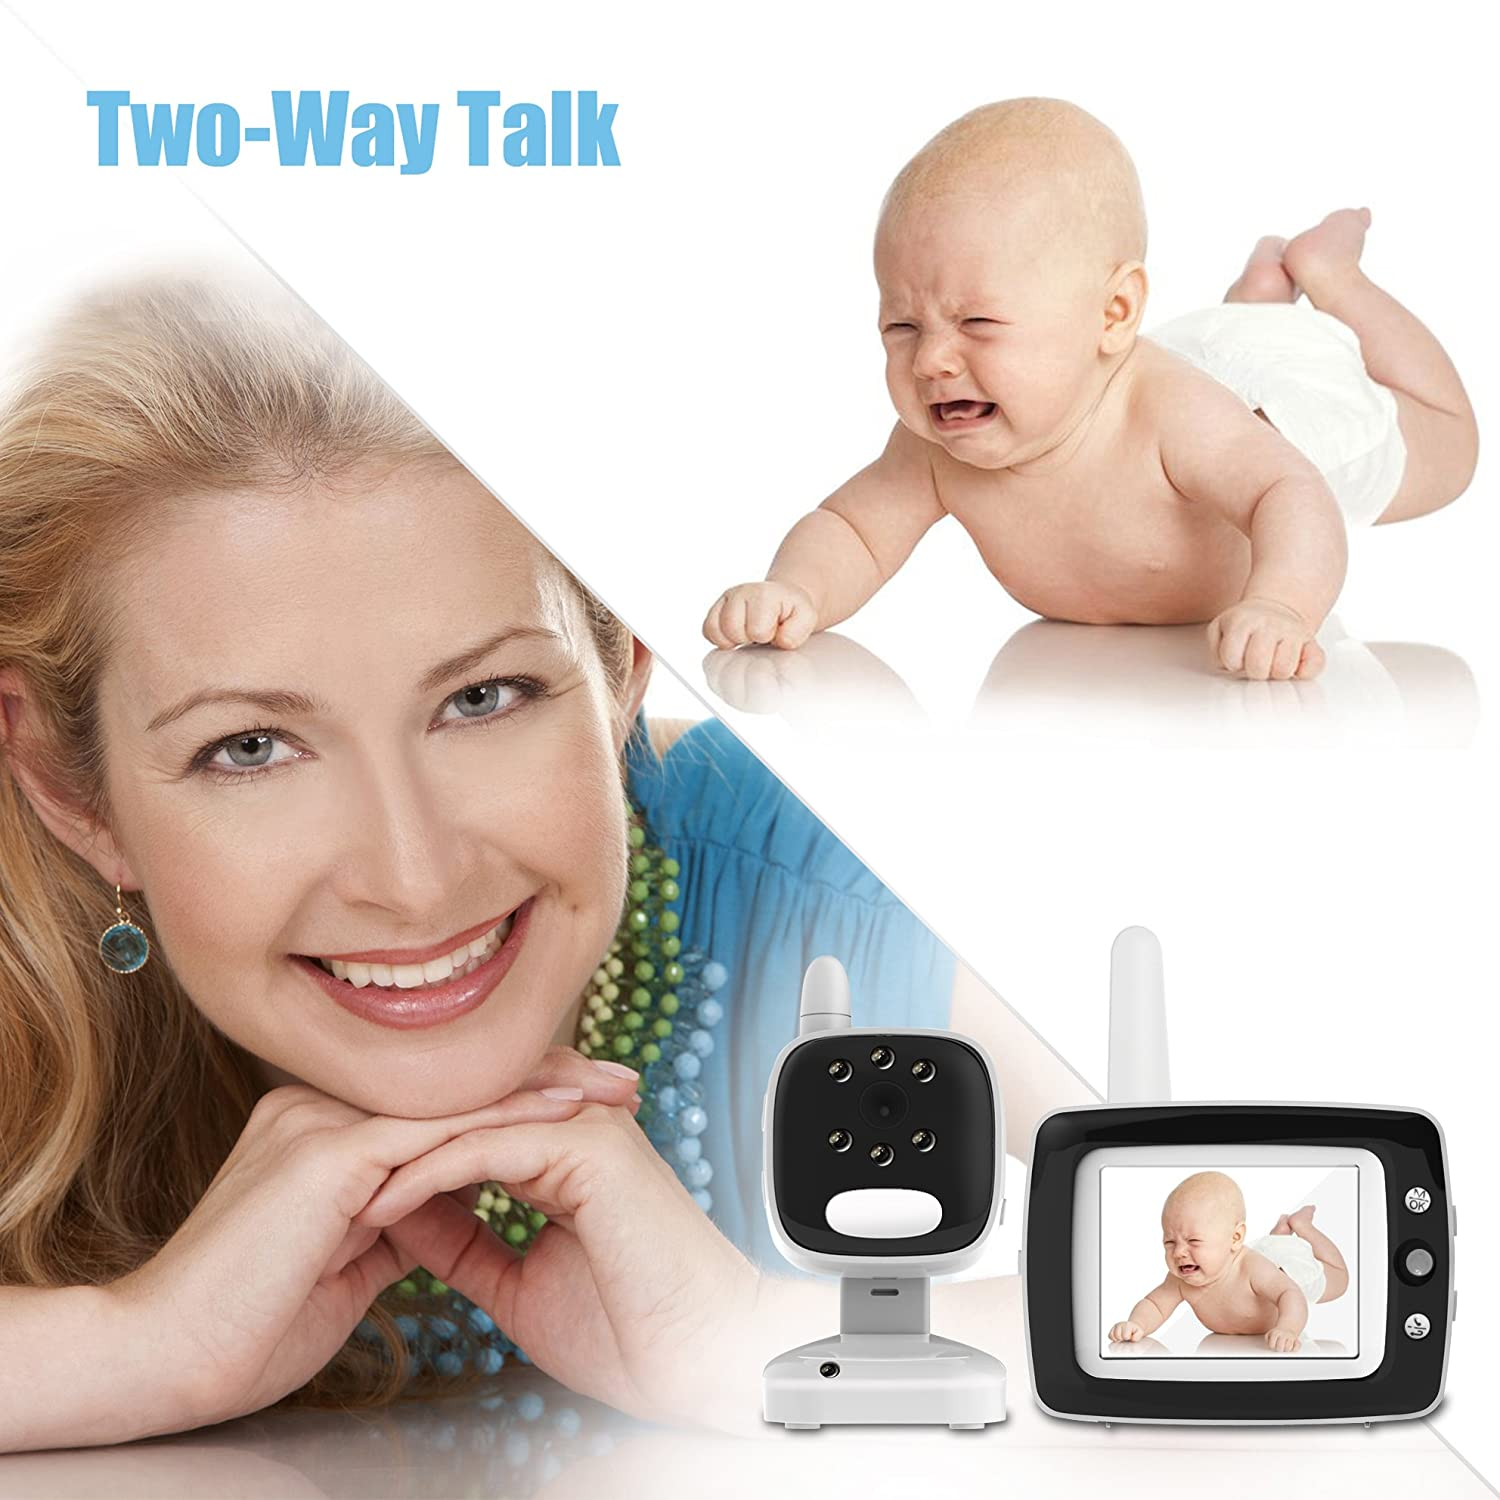 Smart LED Indicator Light HD Video Monitor Soothing Lullabies with 3.5 Inch Color Screen Two Way Audio and Temperature Display Night Vision